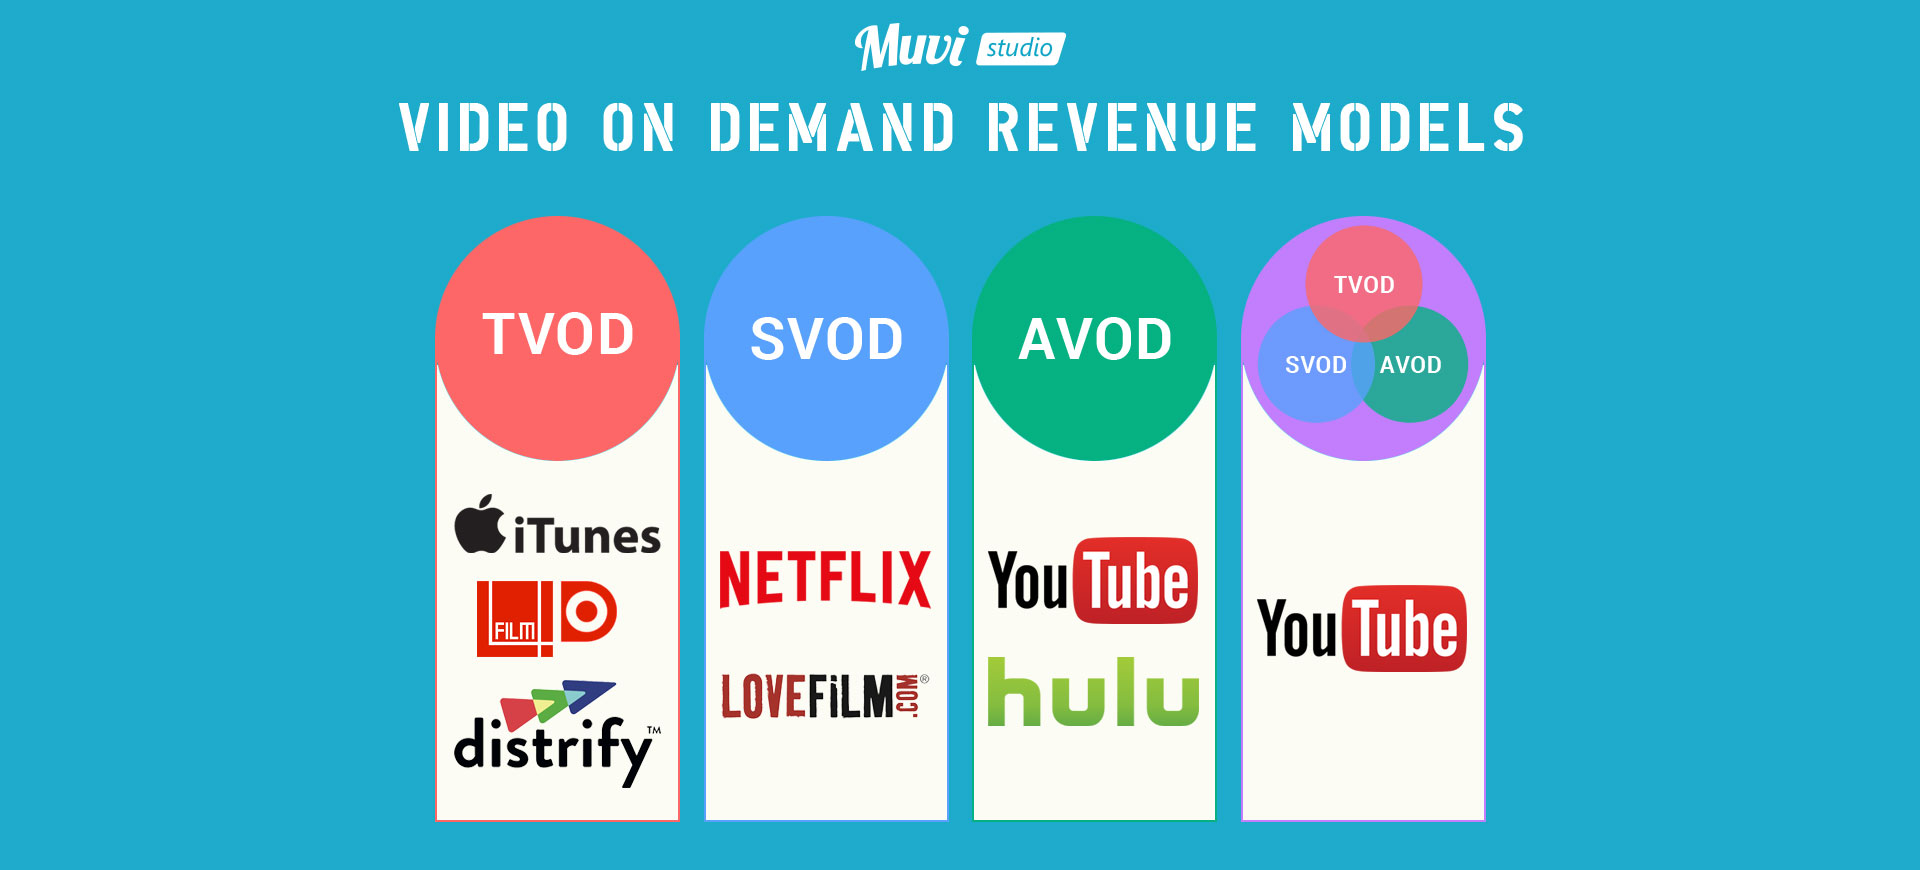 Hybrid OTT Top Business Model For TV Operators